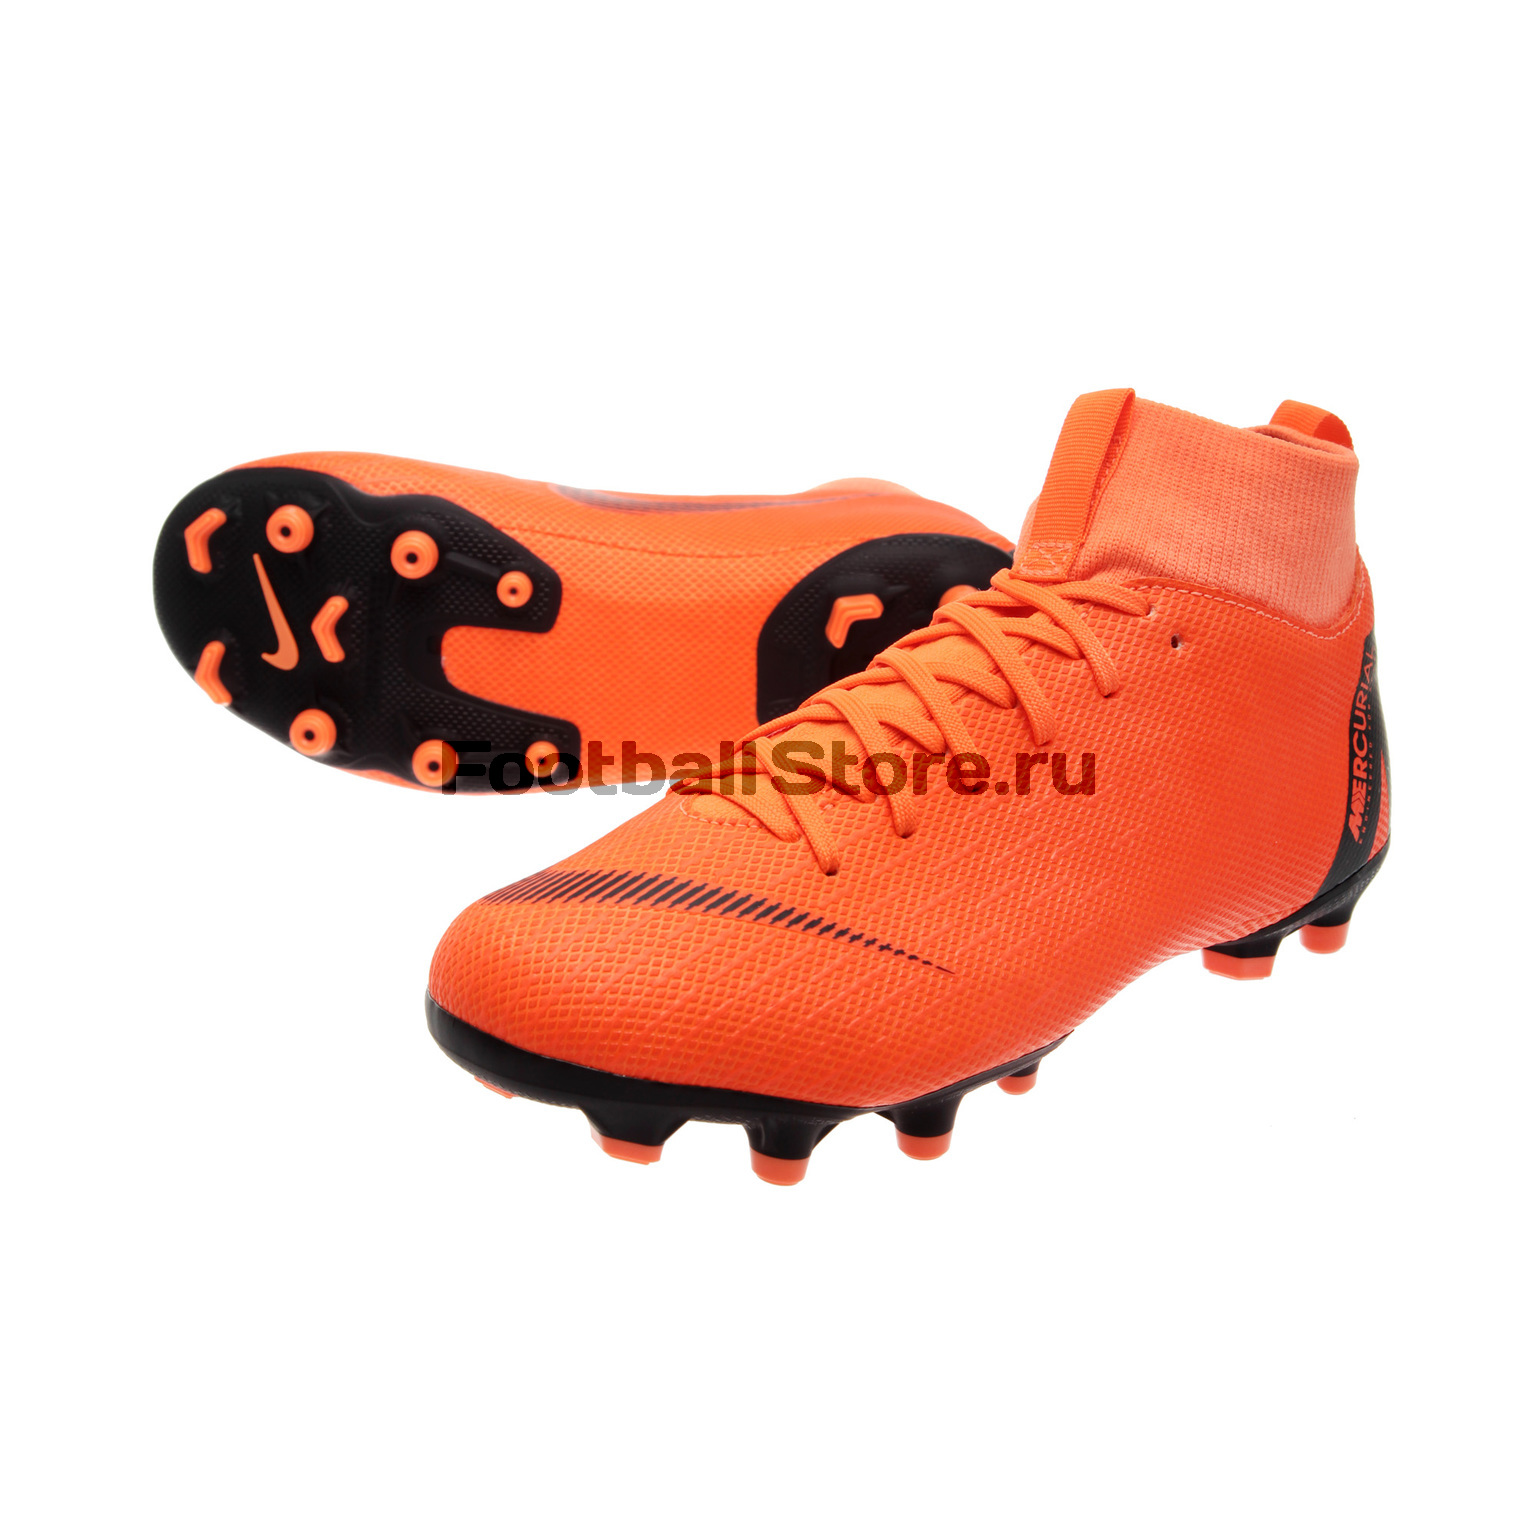 Бутсы Nike JR Superfly 6 Academy GS FG/MG AH7337-810 детские бутсы nike бутсы nike jr phantom 3 elite df fg ah7292 081